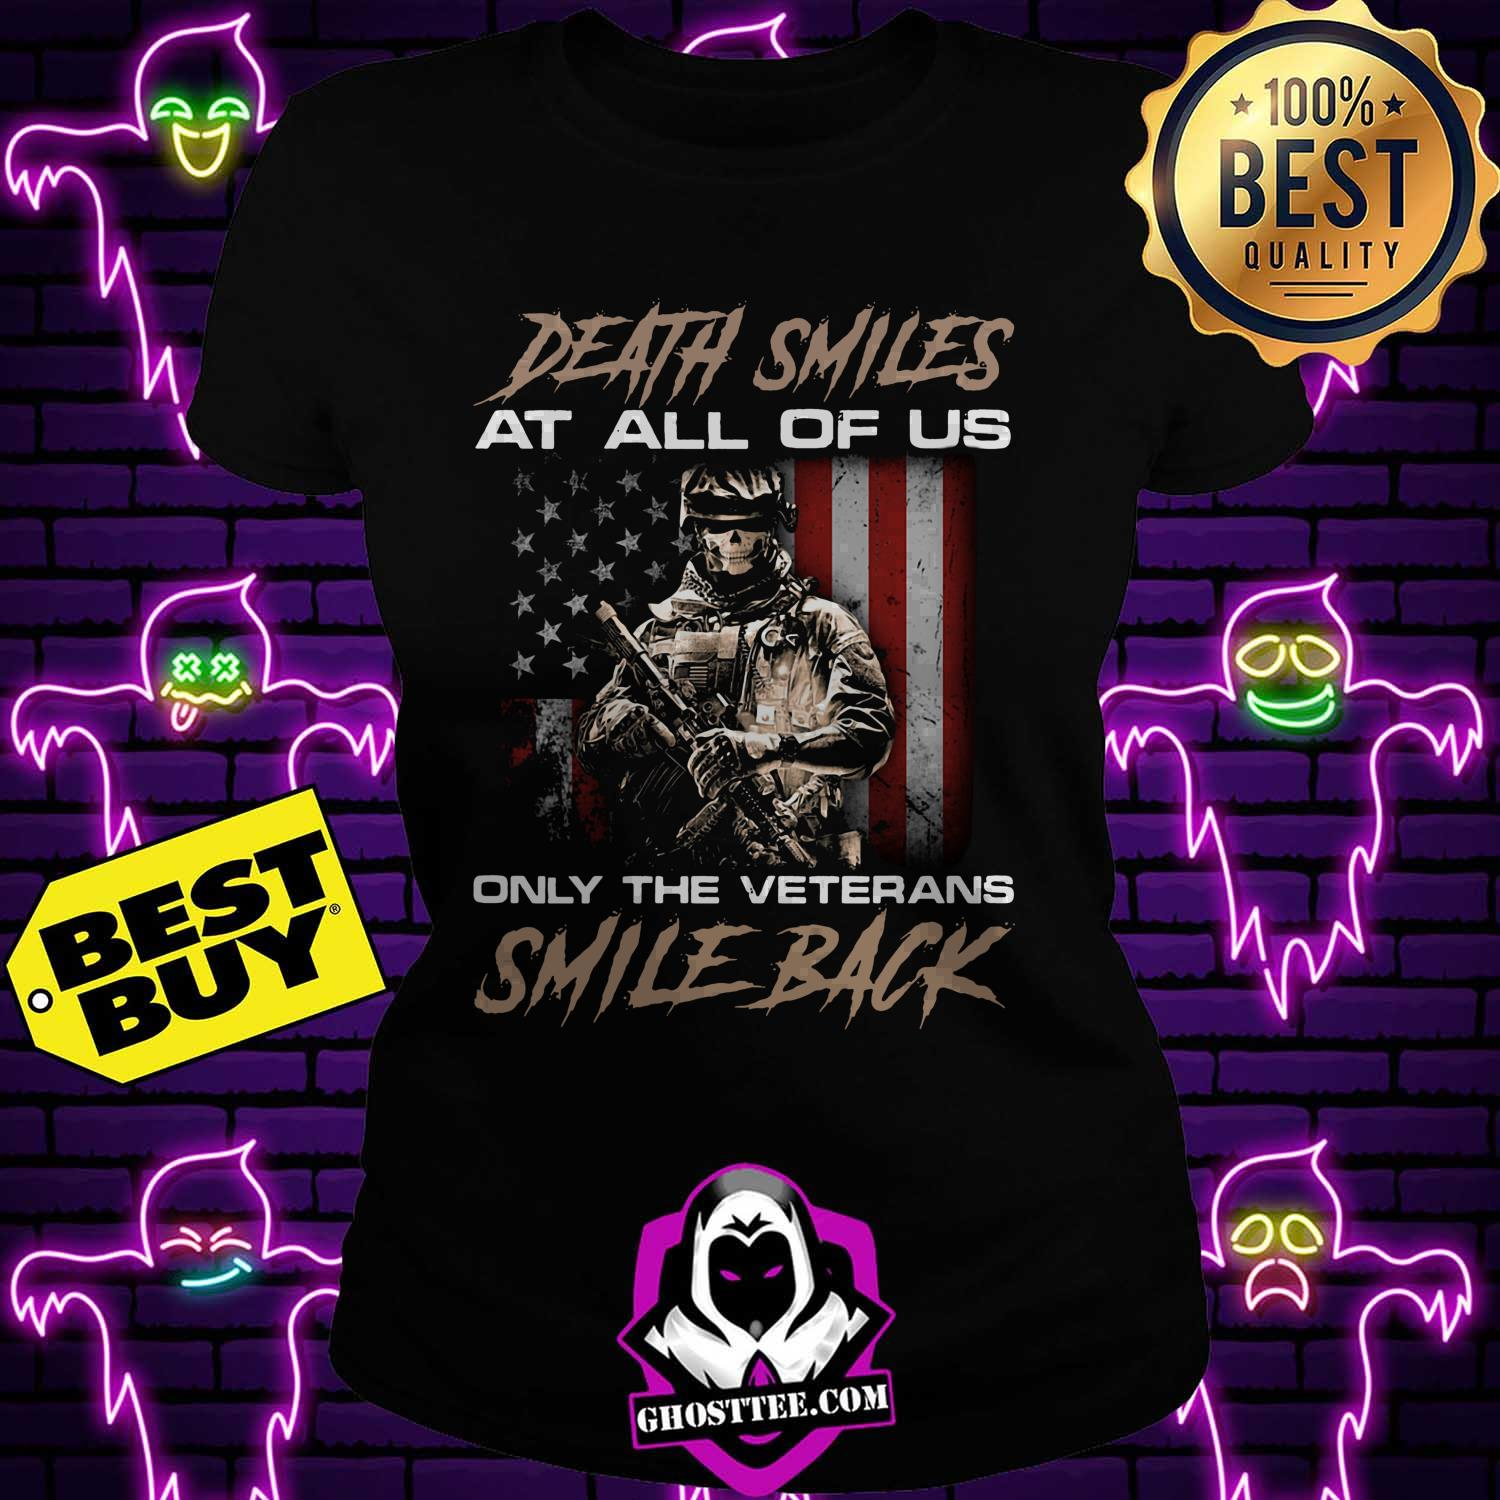 death smiles at all of us only the veterans smile back america flag ladies tee - Death smiles at all of us only the veterans smile back America Flag shirt